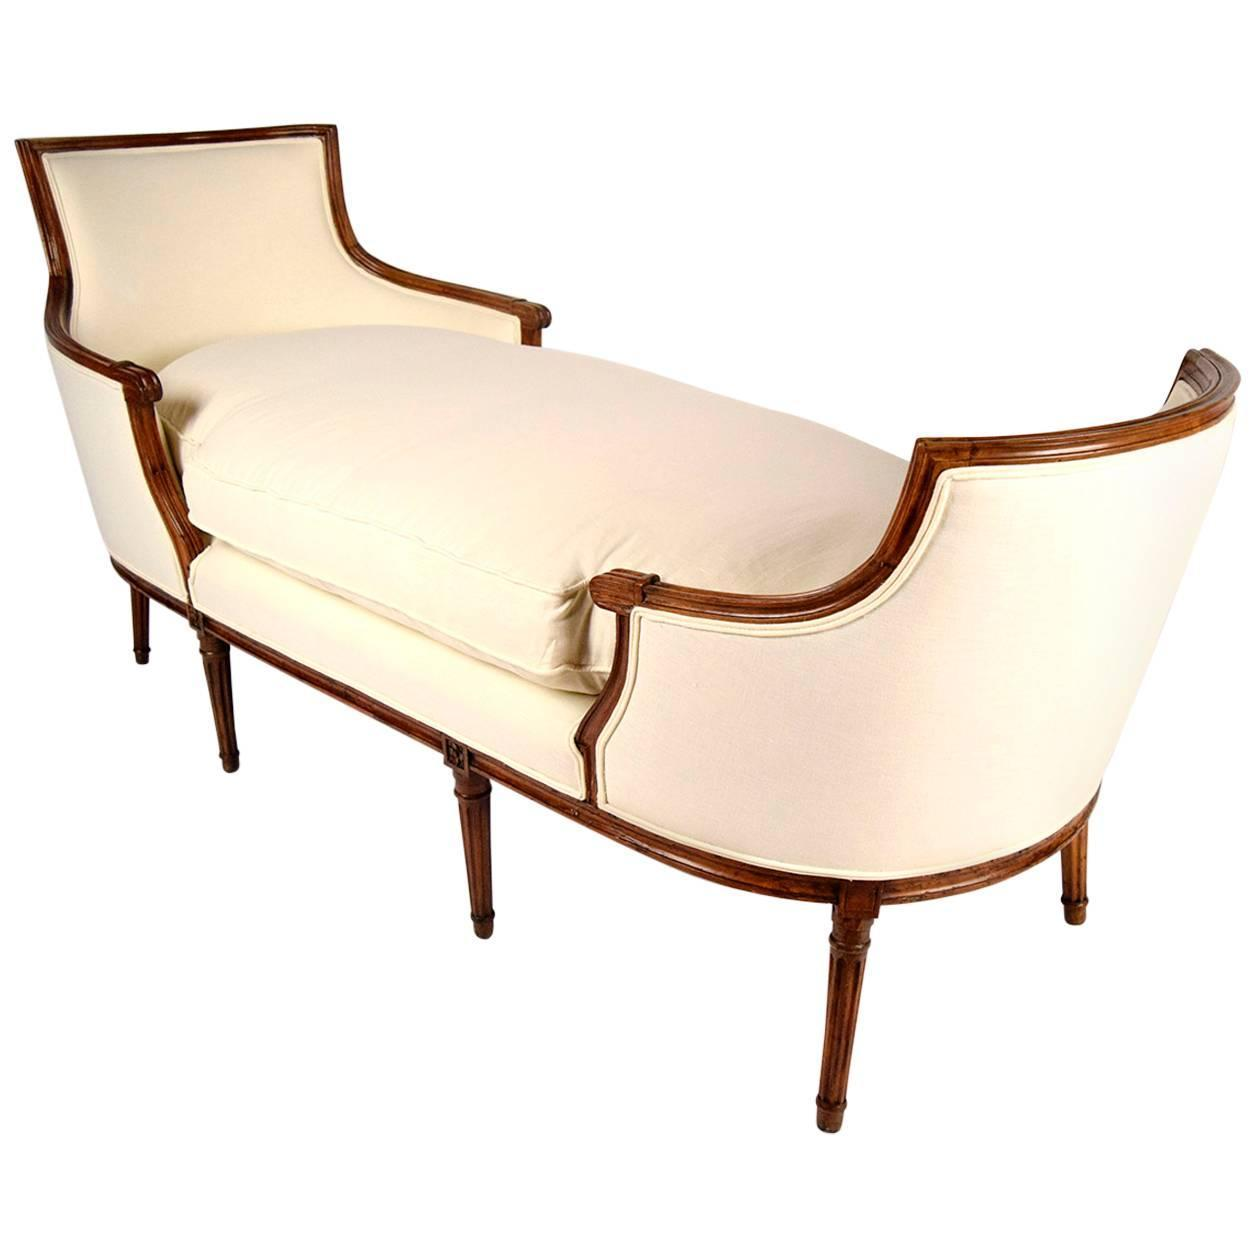 19 th century french louis xvi chaise longue for sale at. Black Bedroom Furniture Sets. Home Design Ideas